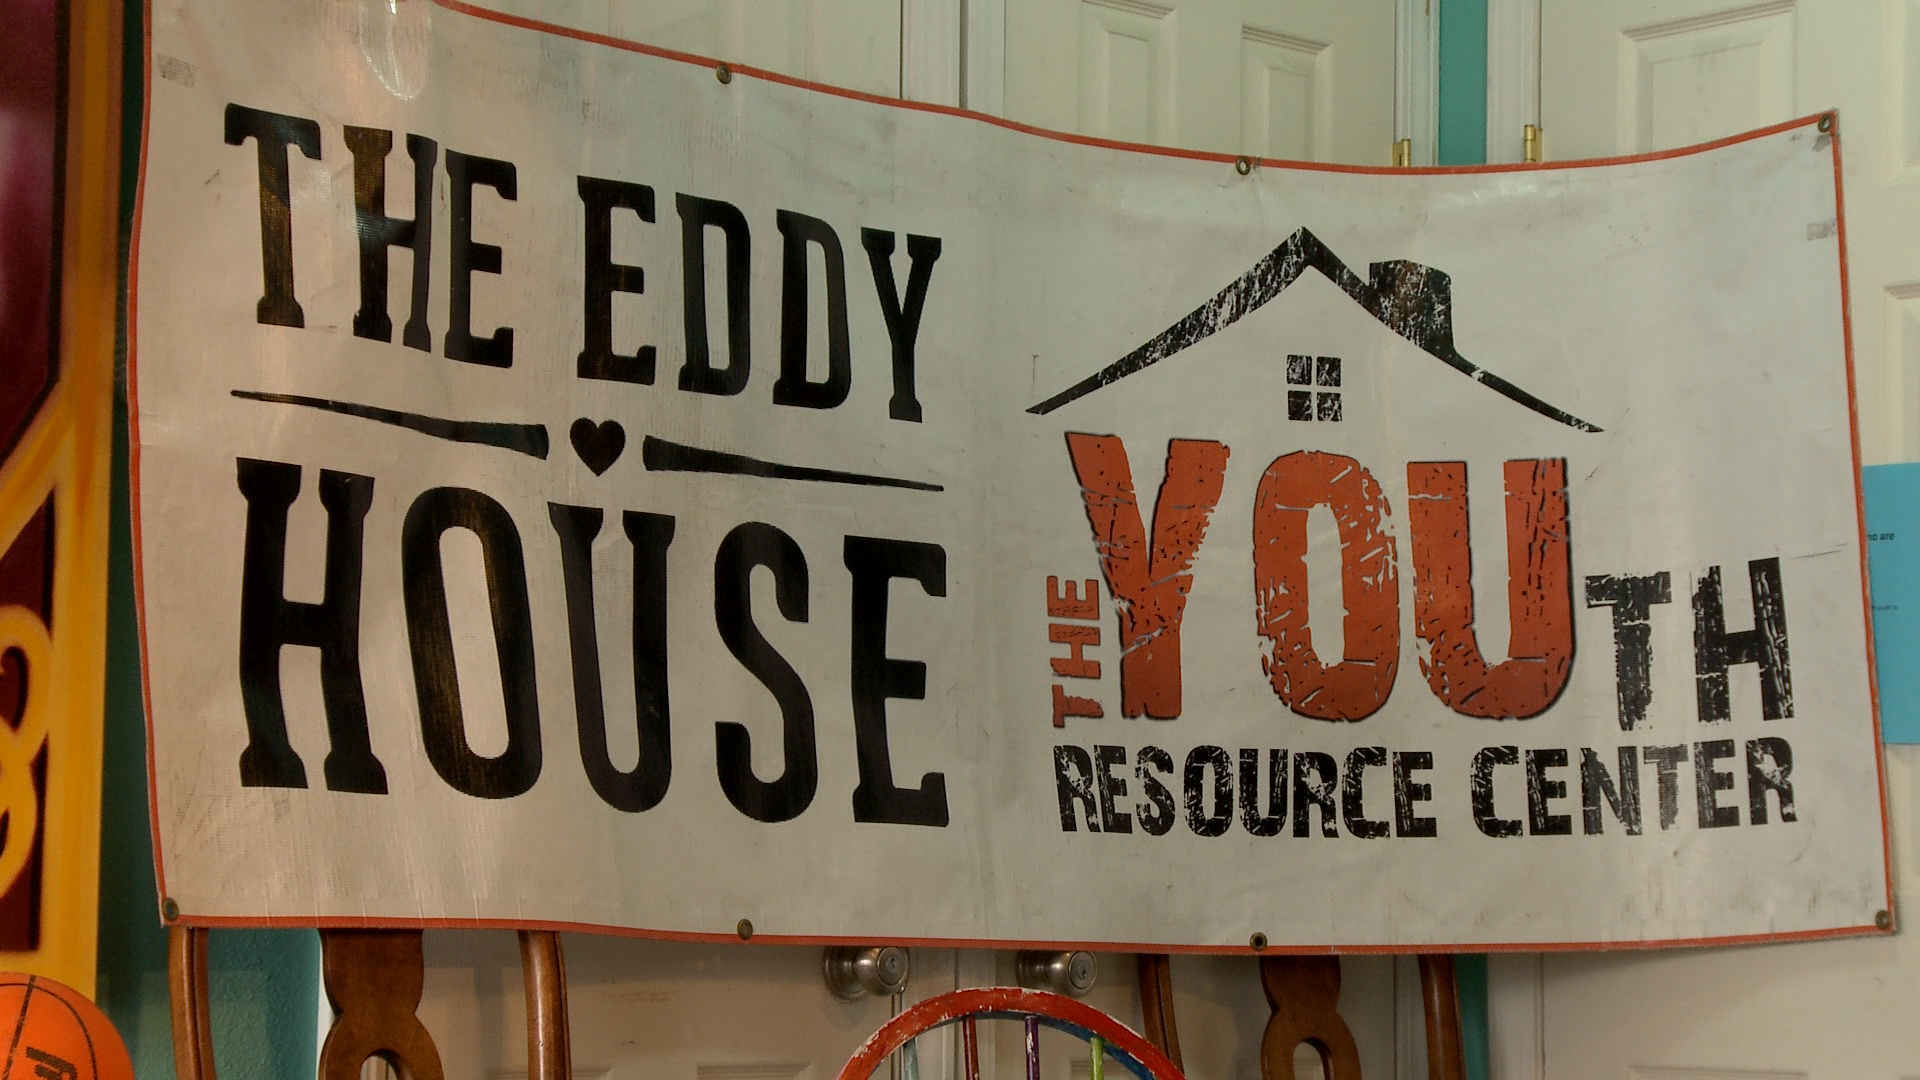 The Eddy House does offer many services during the day, which Philipp has benefited from.